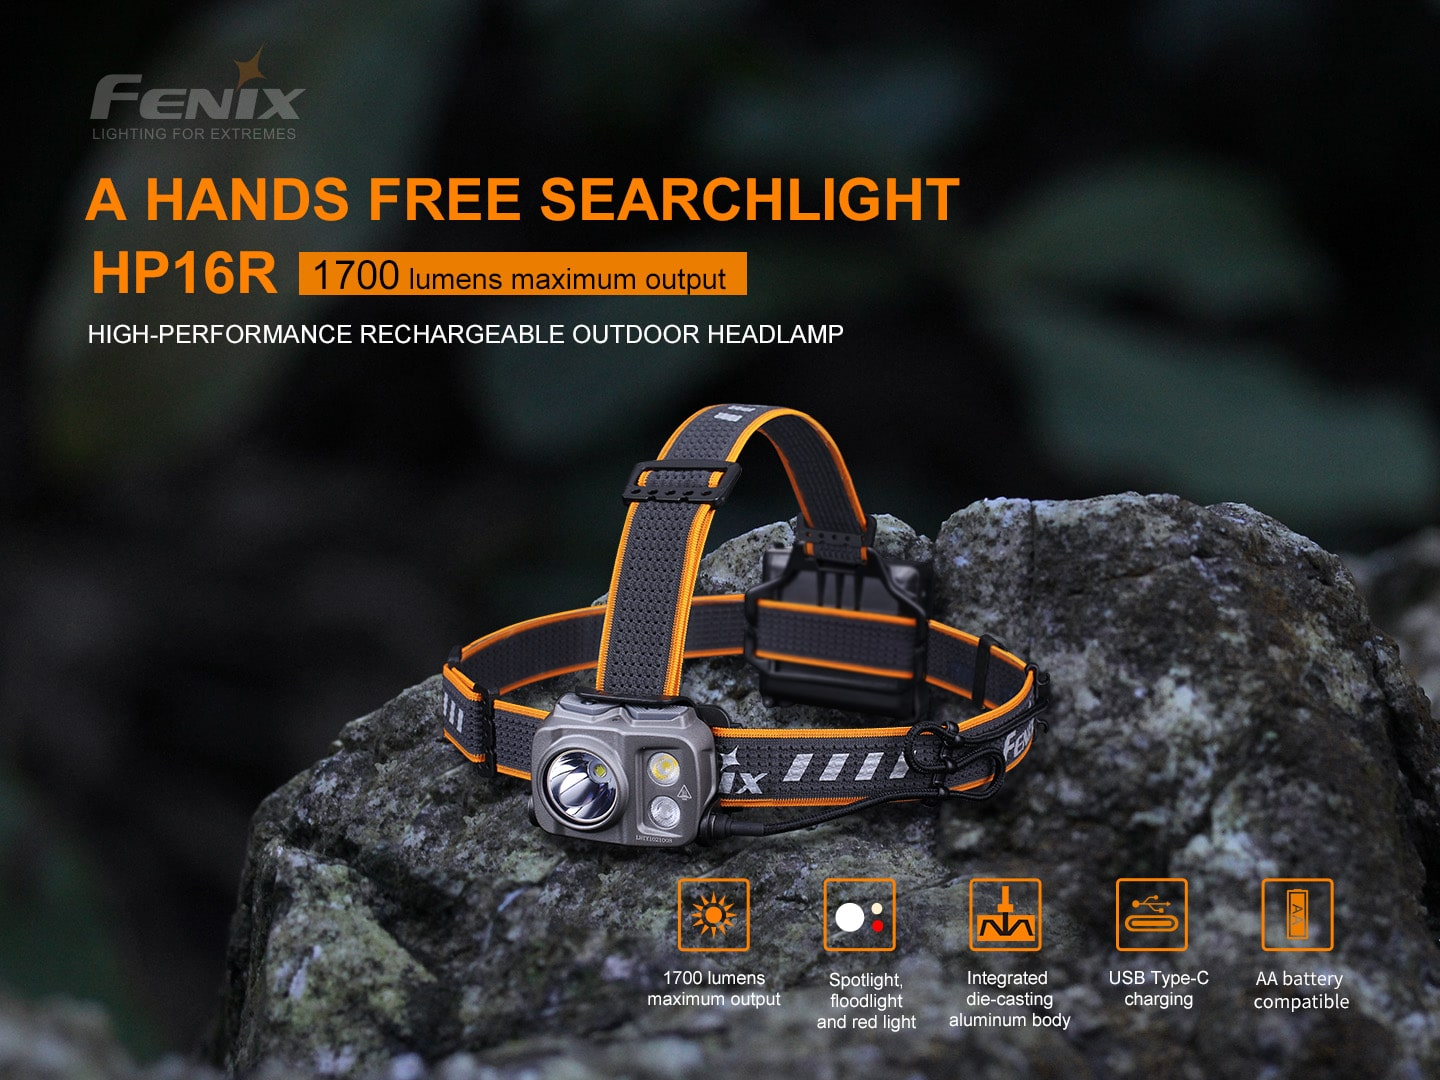 Fenix HP16R LED Headlamp in India, Best Compact Rechargeable Headlamp Torch 1700 Lumens, Powerful Outdoors Headlamp, Head Torch perfect for Outdoors, Hiking & Trekking, Work Professional, Mining, mountaineering EDC Headlamp